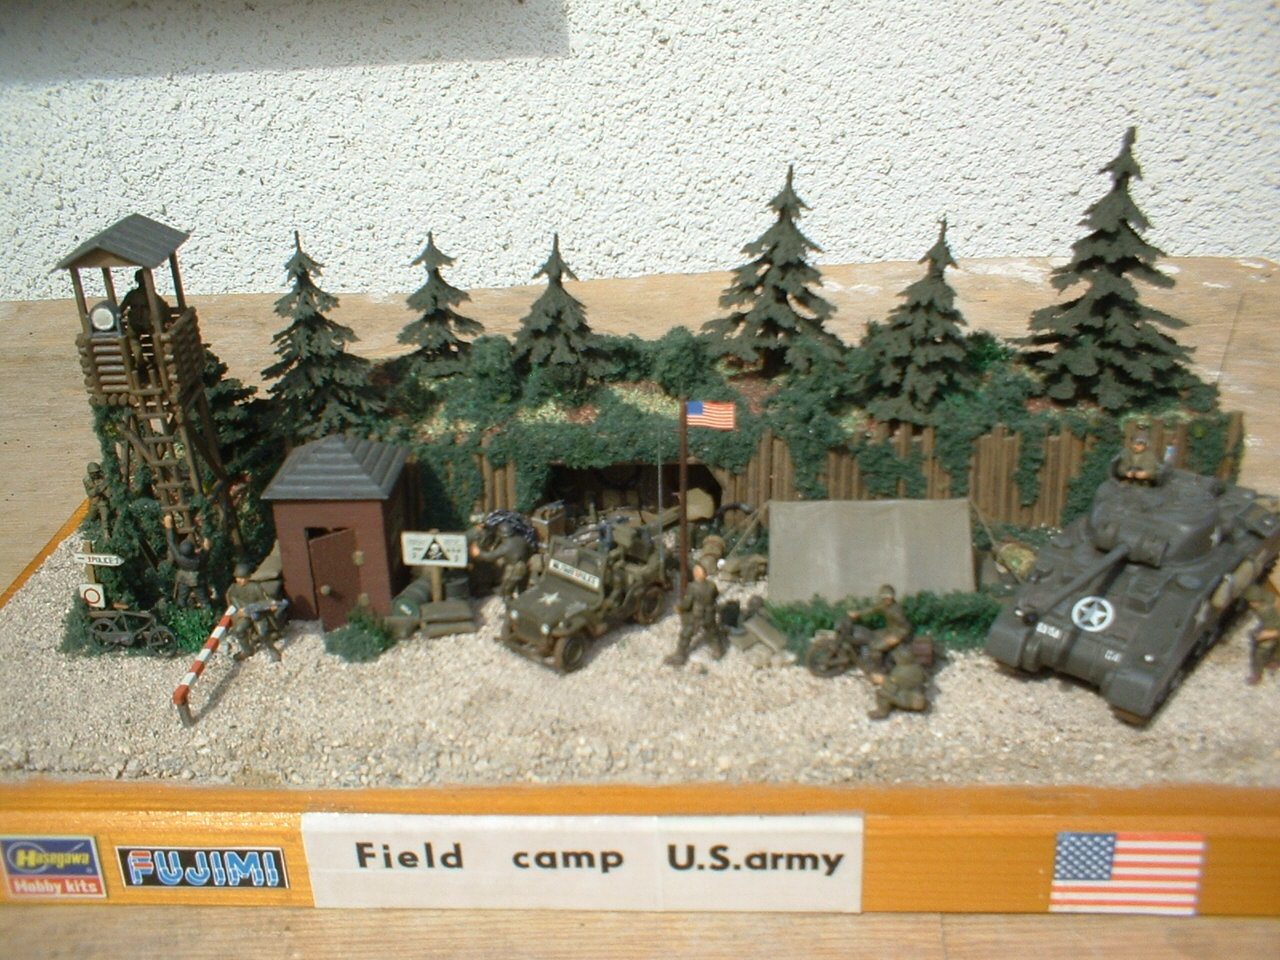 Field camp U.S.army